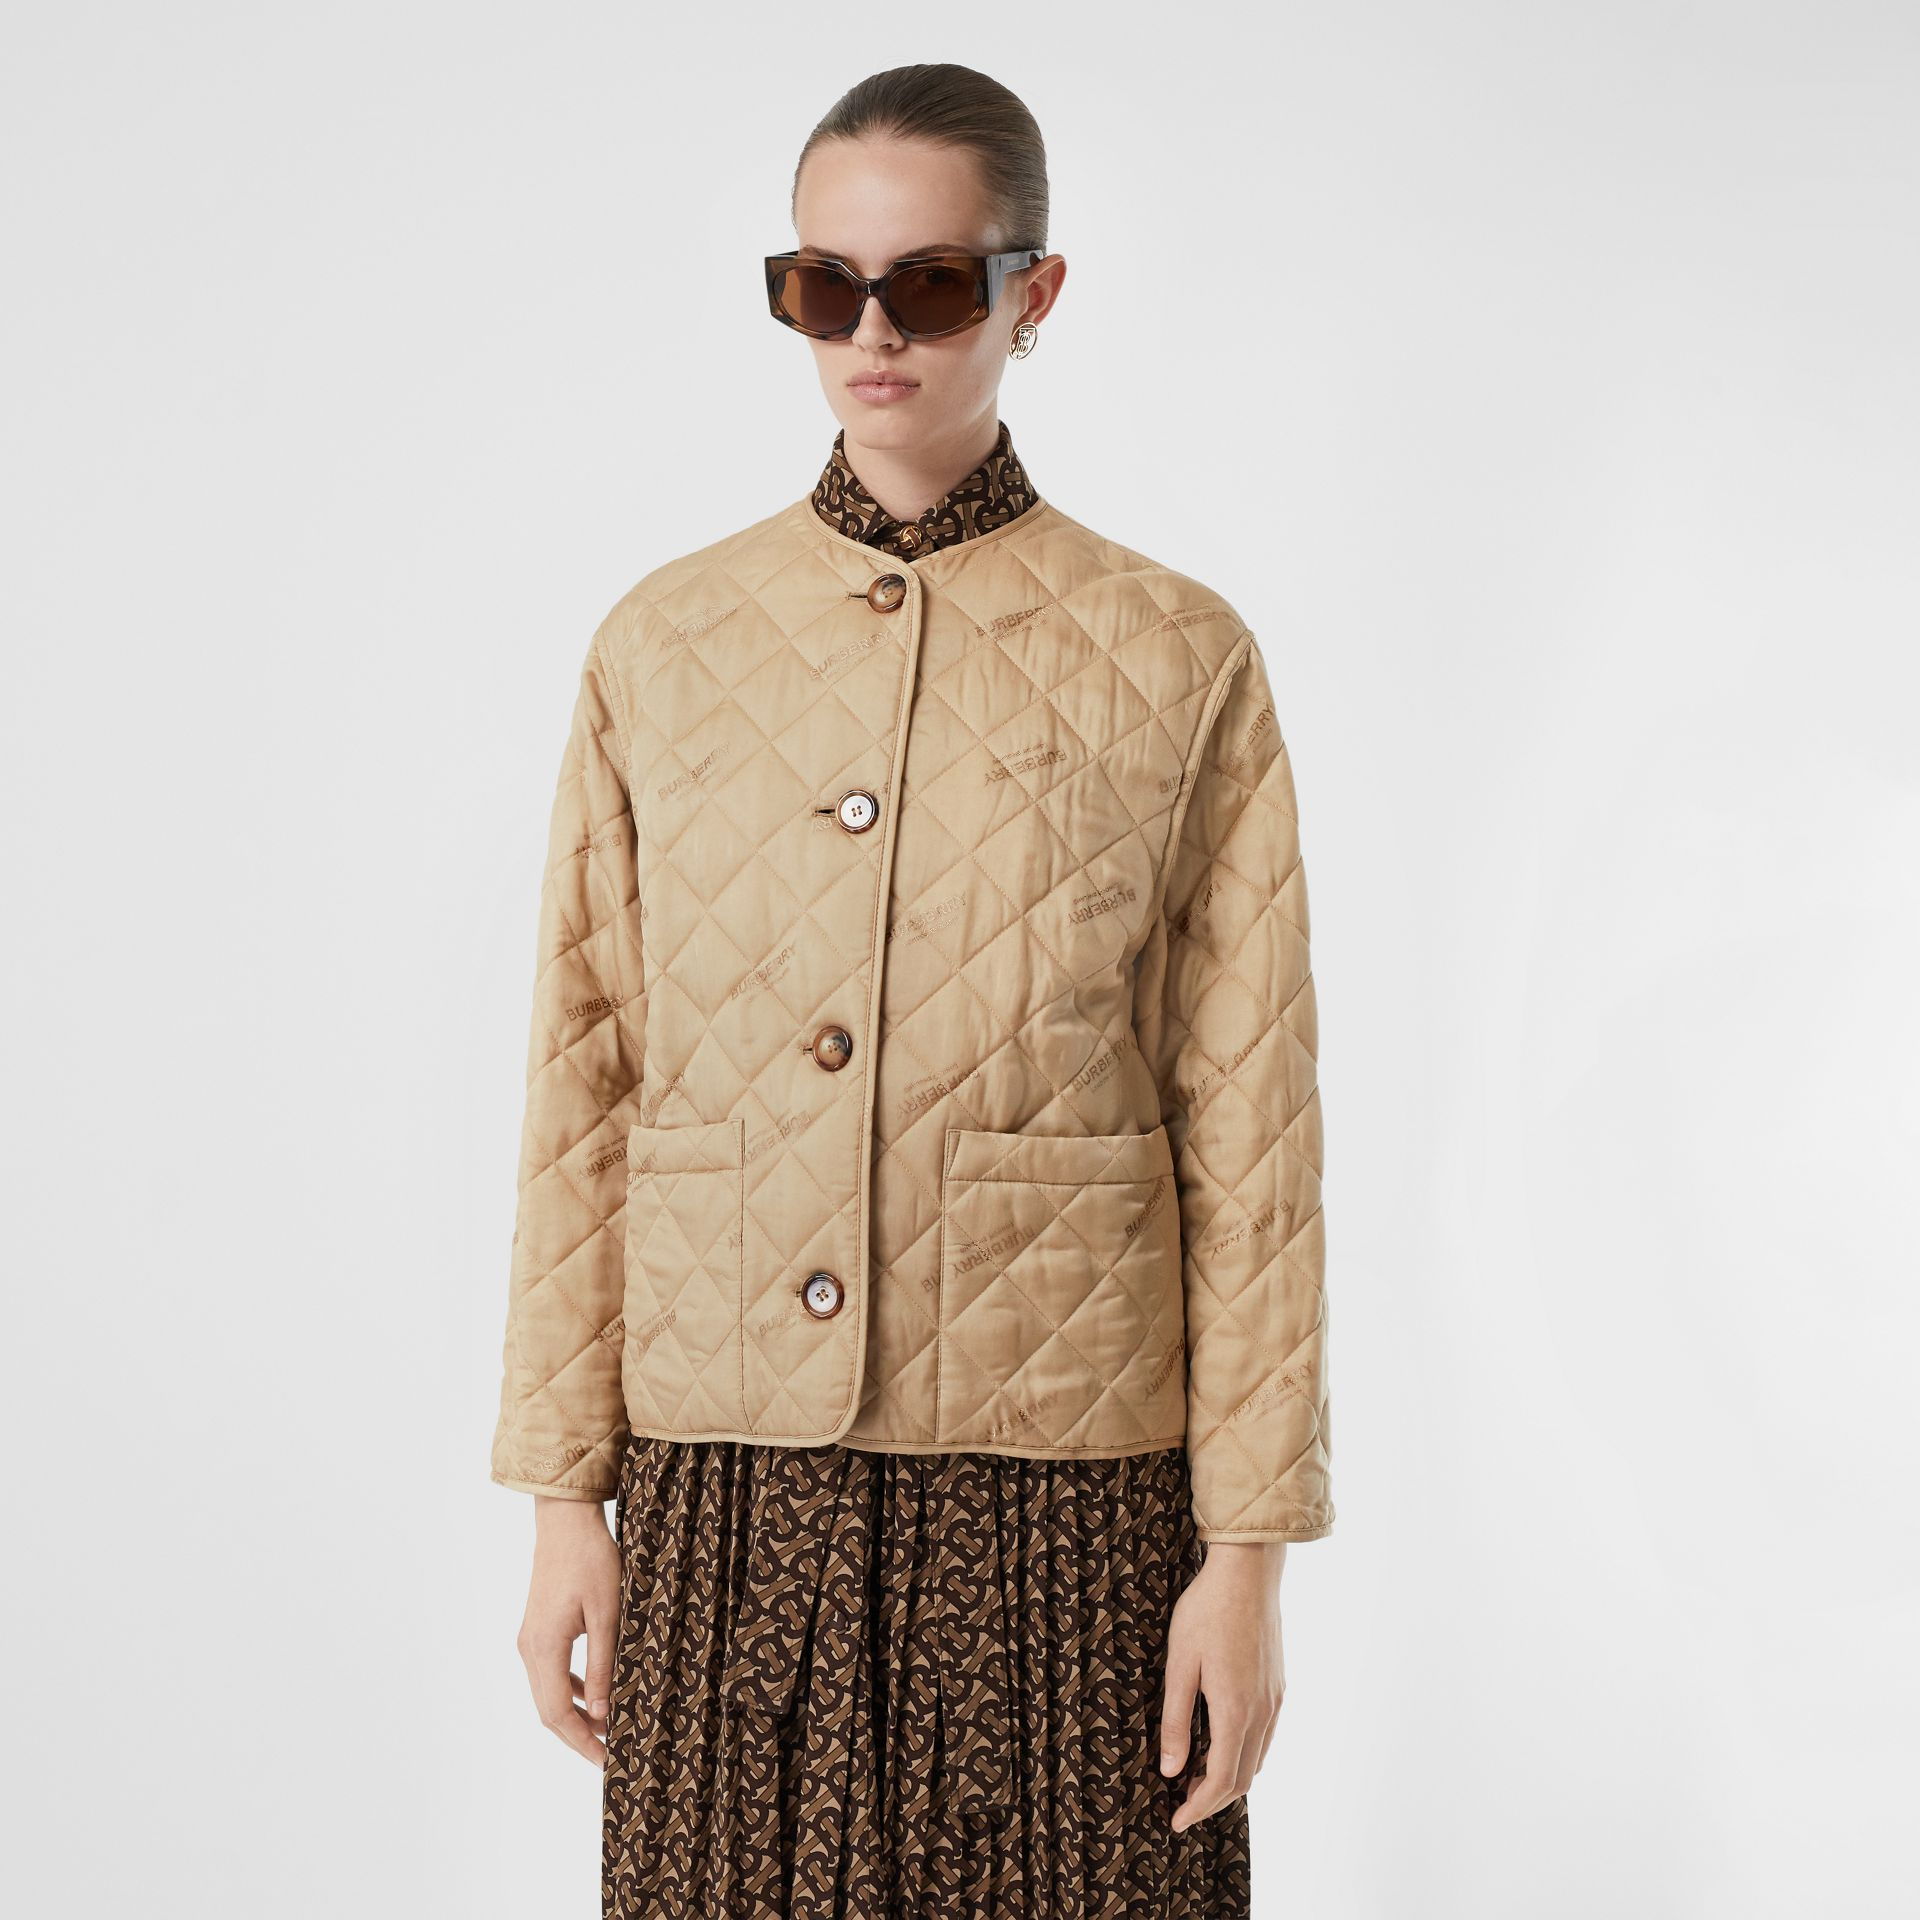 Logo Jacquard Diamond Quilted Jacket in Ecru - Women | Burberry Hong Kong S.A.R - gallery image 5